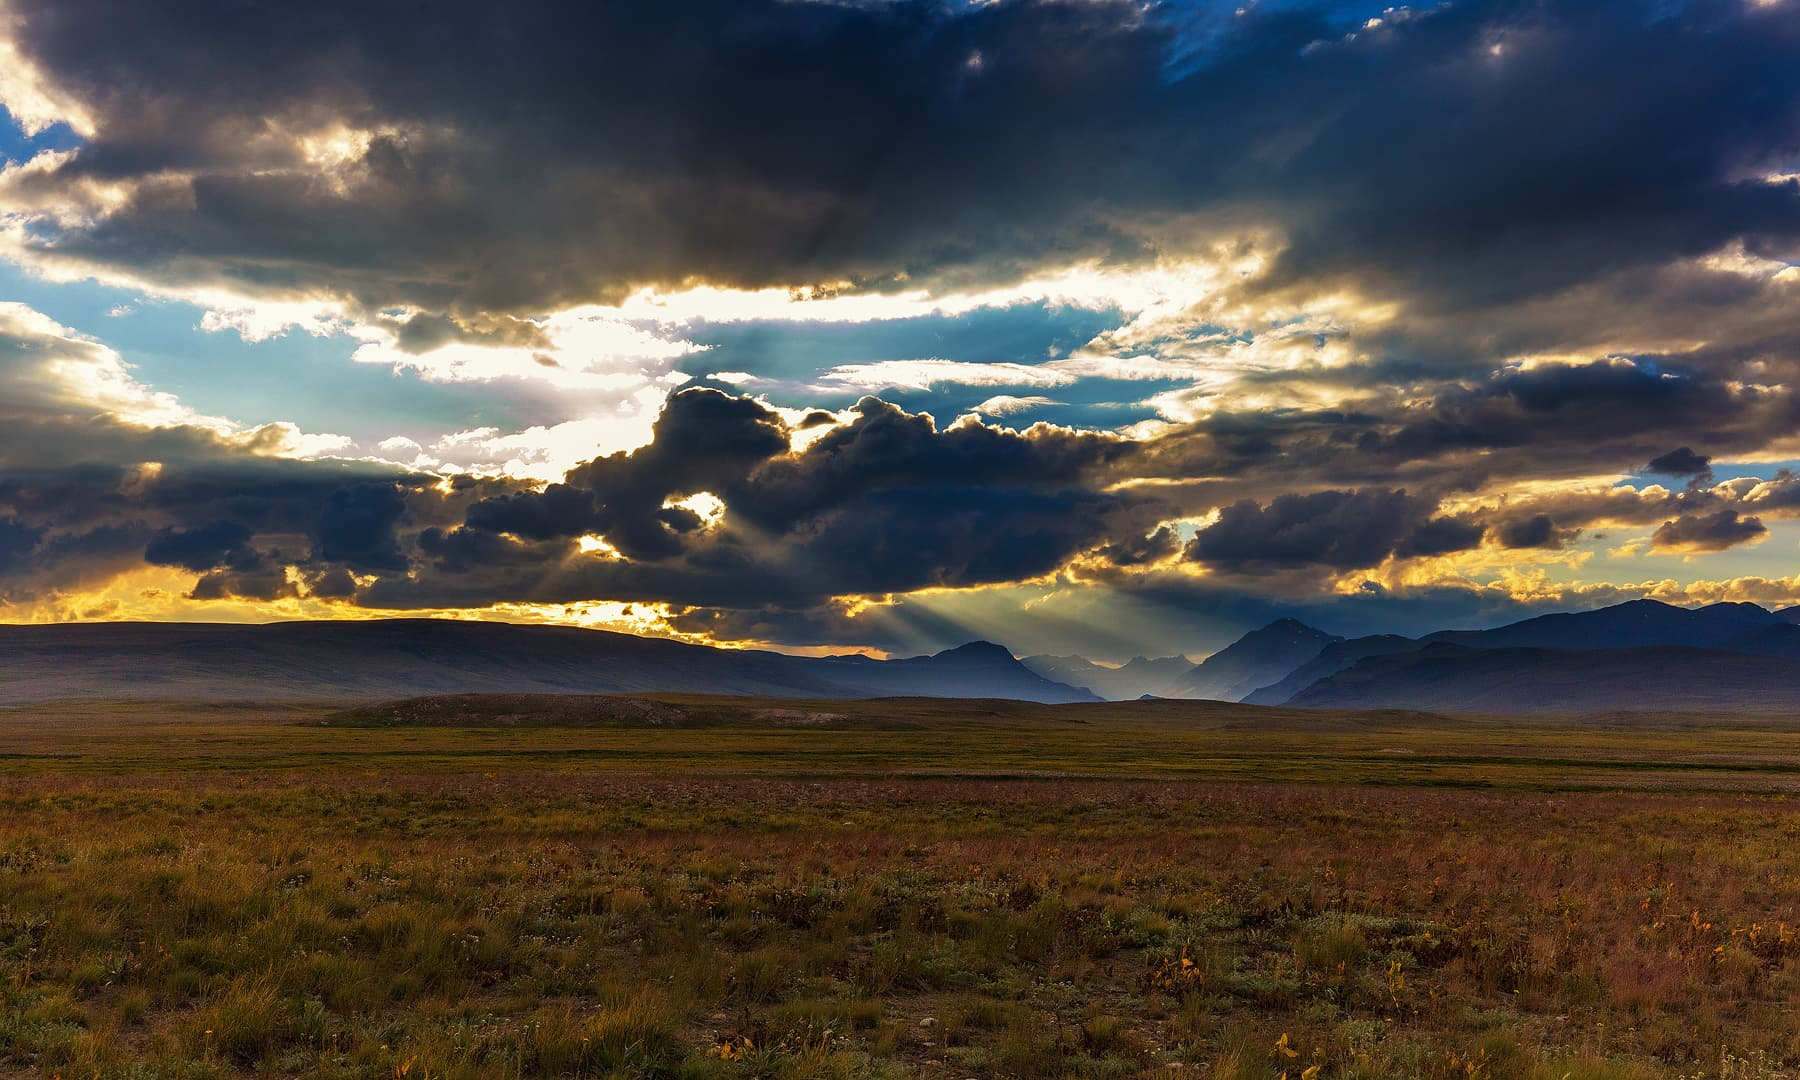 Watching the sunset in Deosai was an unforgettable experience.